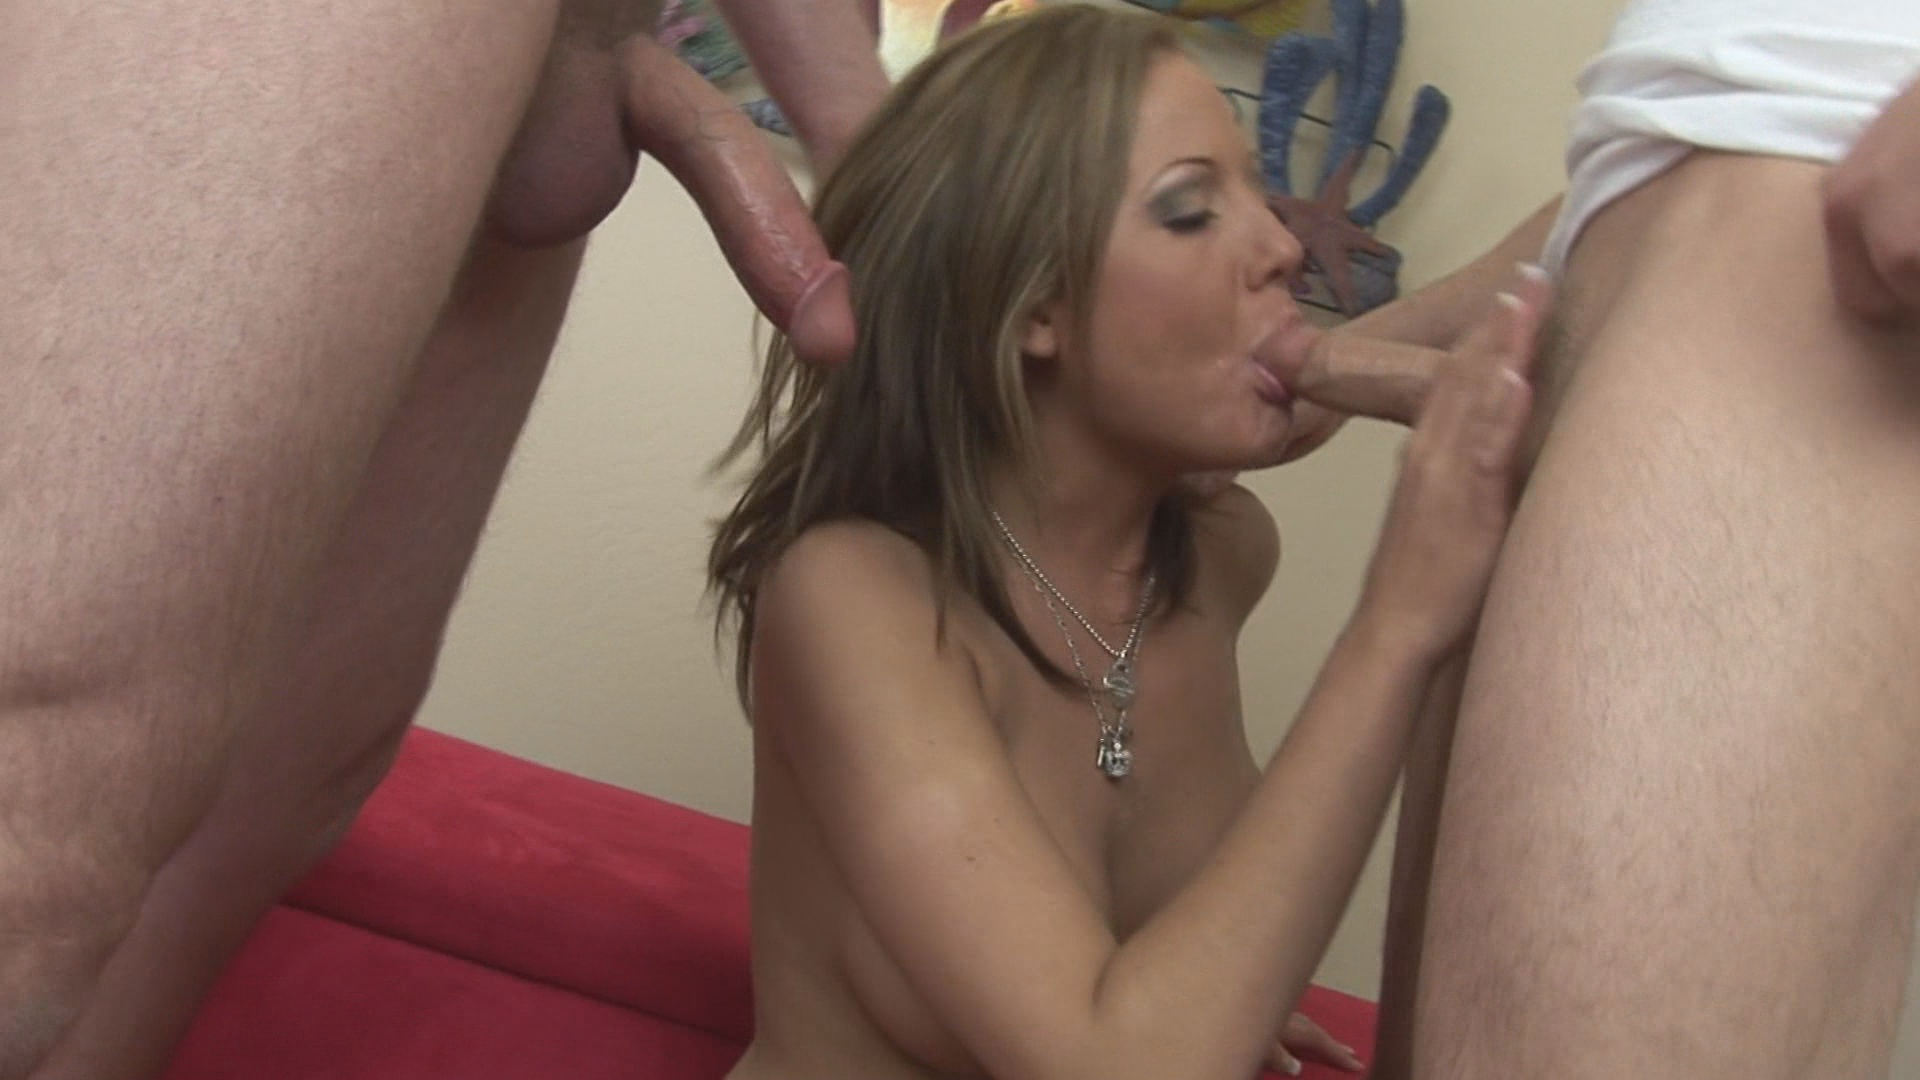 Fucking Sophia 8 / When it comes to fucking, Sophia does not fuck around. Not at all. Whether she's gagging on multiple cocks, getting double-stuffed in the muff, taking a monster cock to the ass, or just cramming sex toys in every orifice, she can only do things one way...